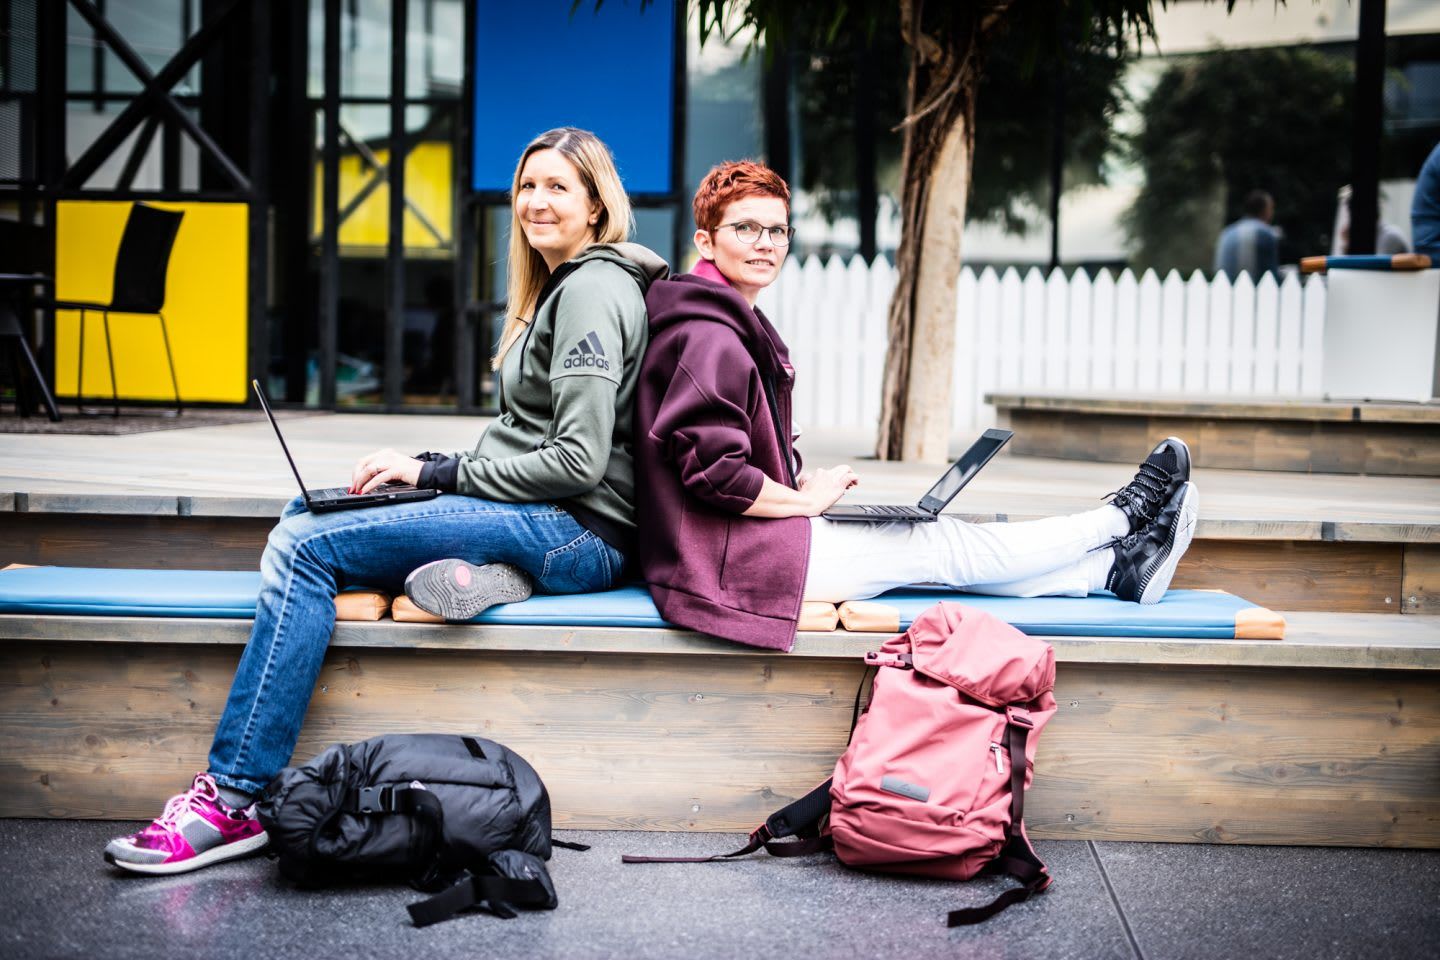 Two Women sitting back to back holding laptops job sharing interview at adidas